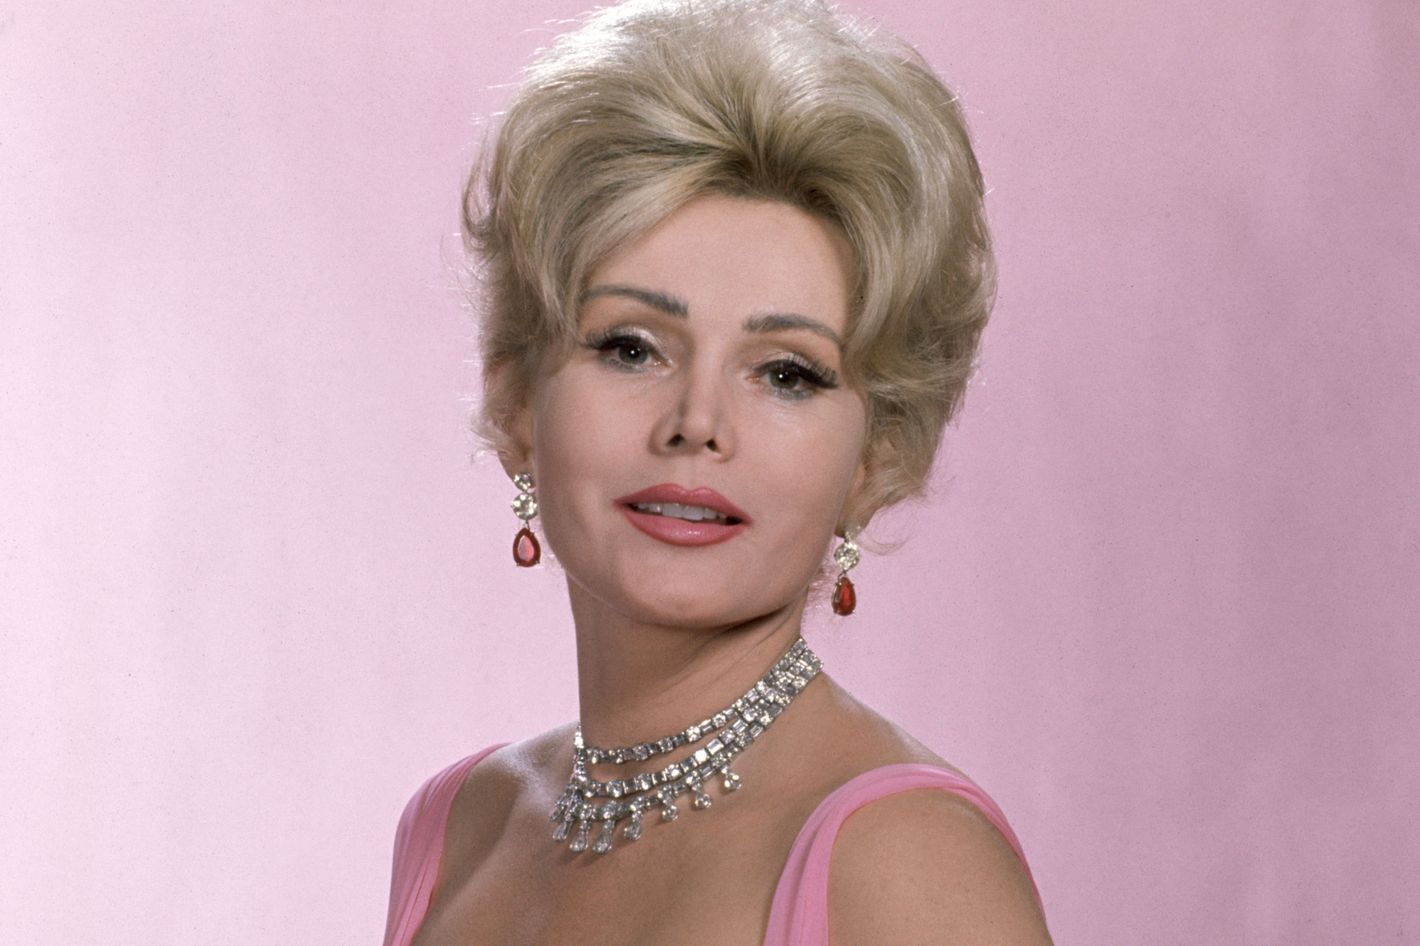 Zsa Zsa Gabor Quotes If You Take Advice From Anyone Make It Zsa Zsa Gabor